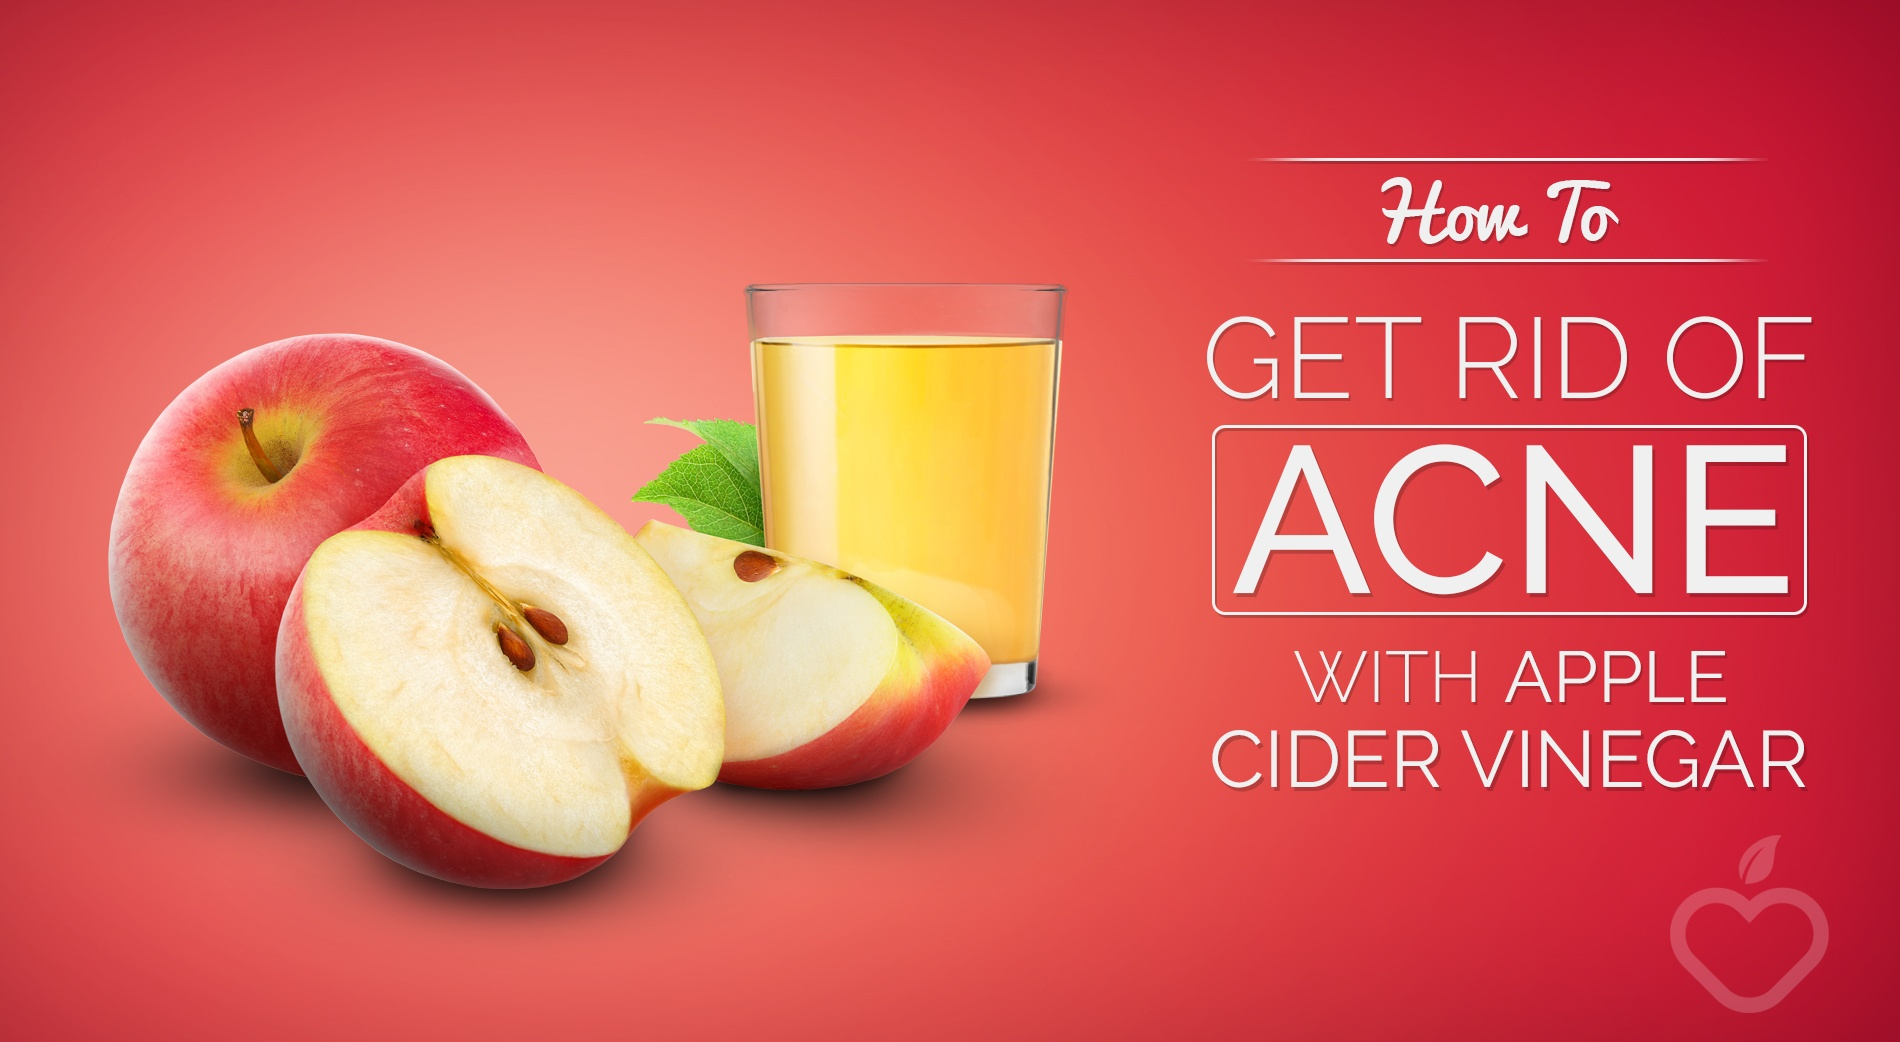 How To Get Rid Of Acne With Apple Cider Vinegar - Positive ...